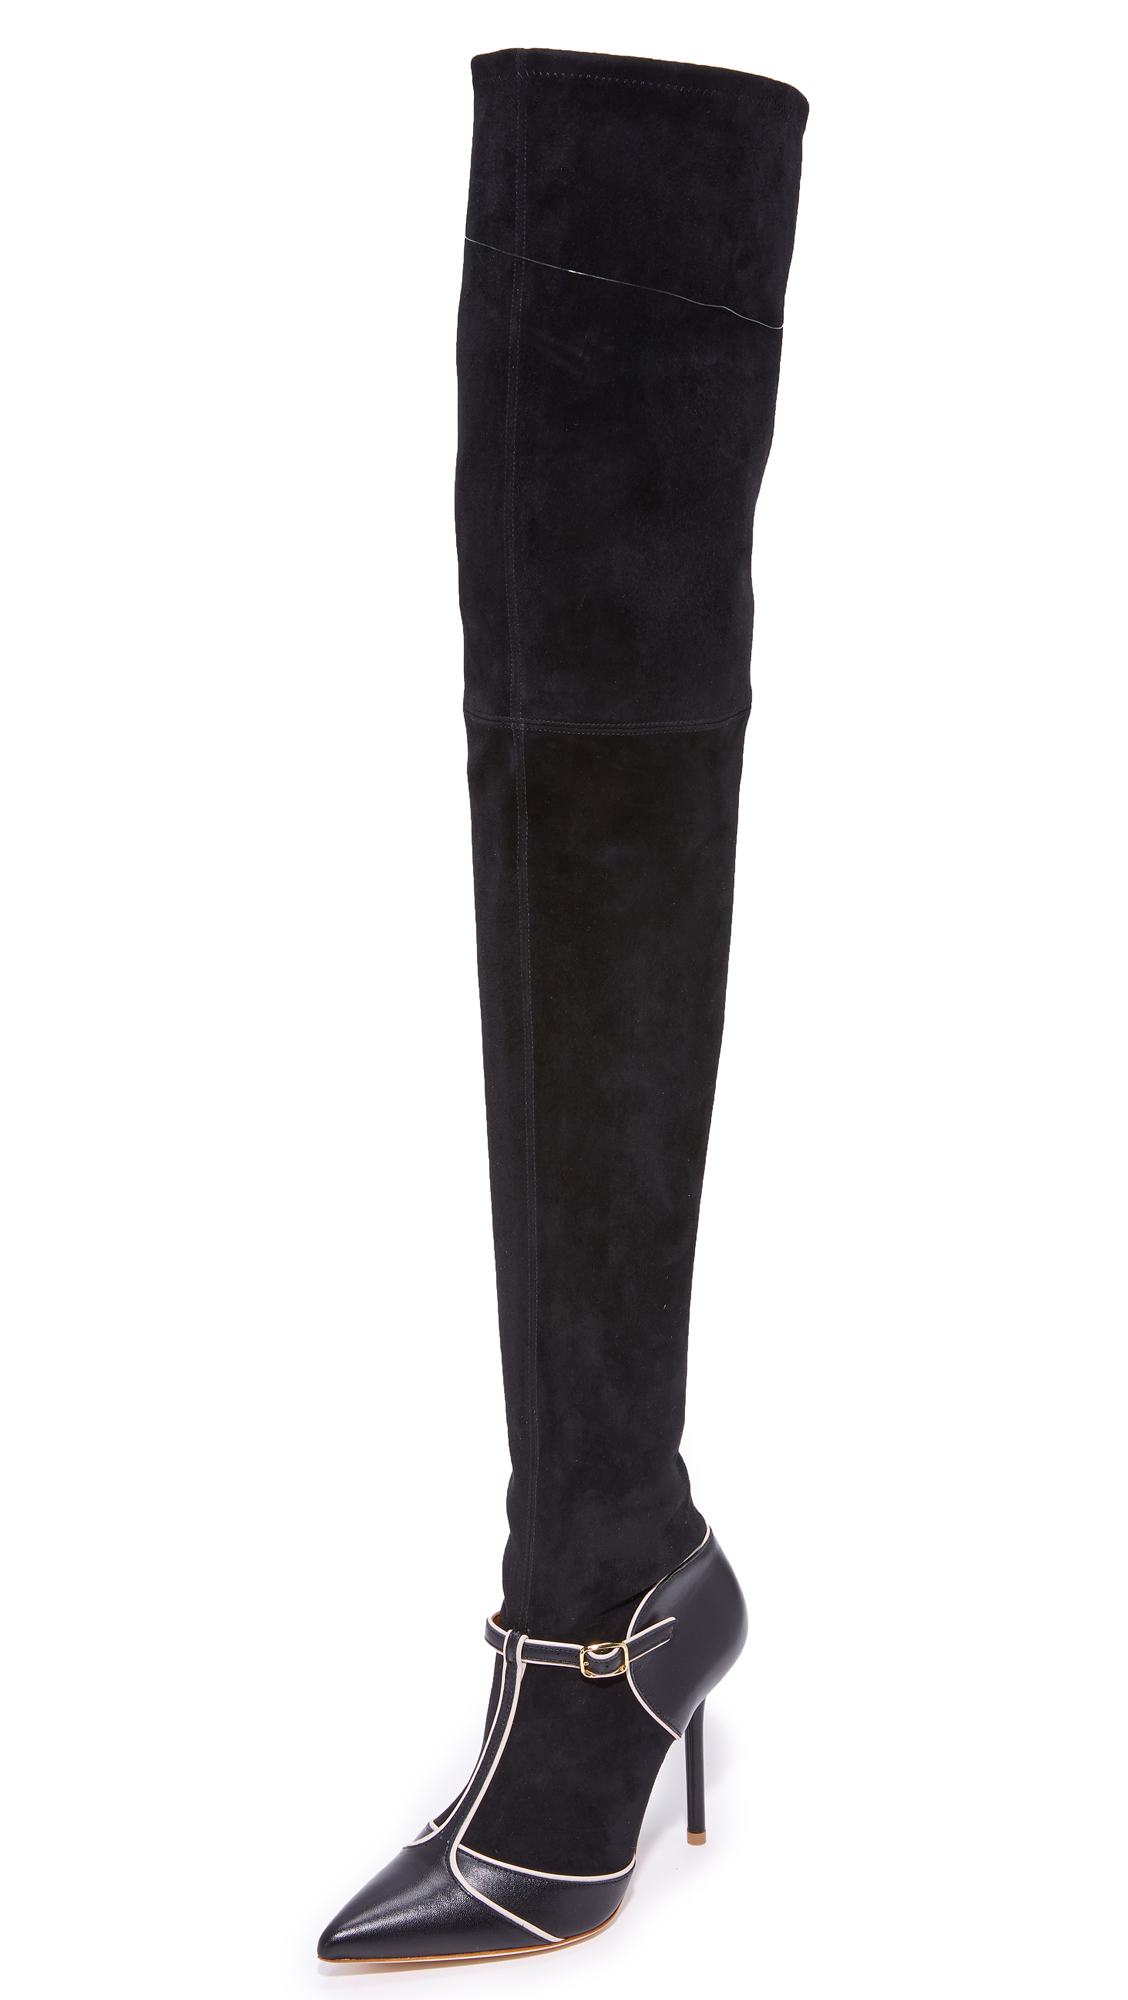 Malone Souliers Sadie Over the Knee Boots - Black/Black/Black/Light Grey